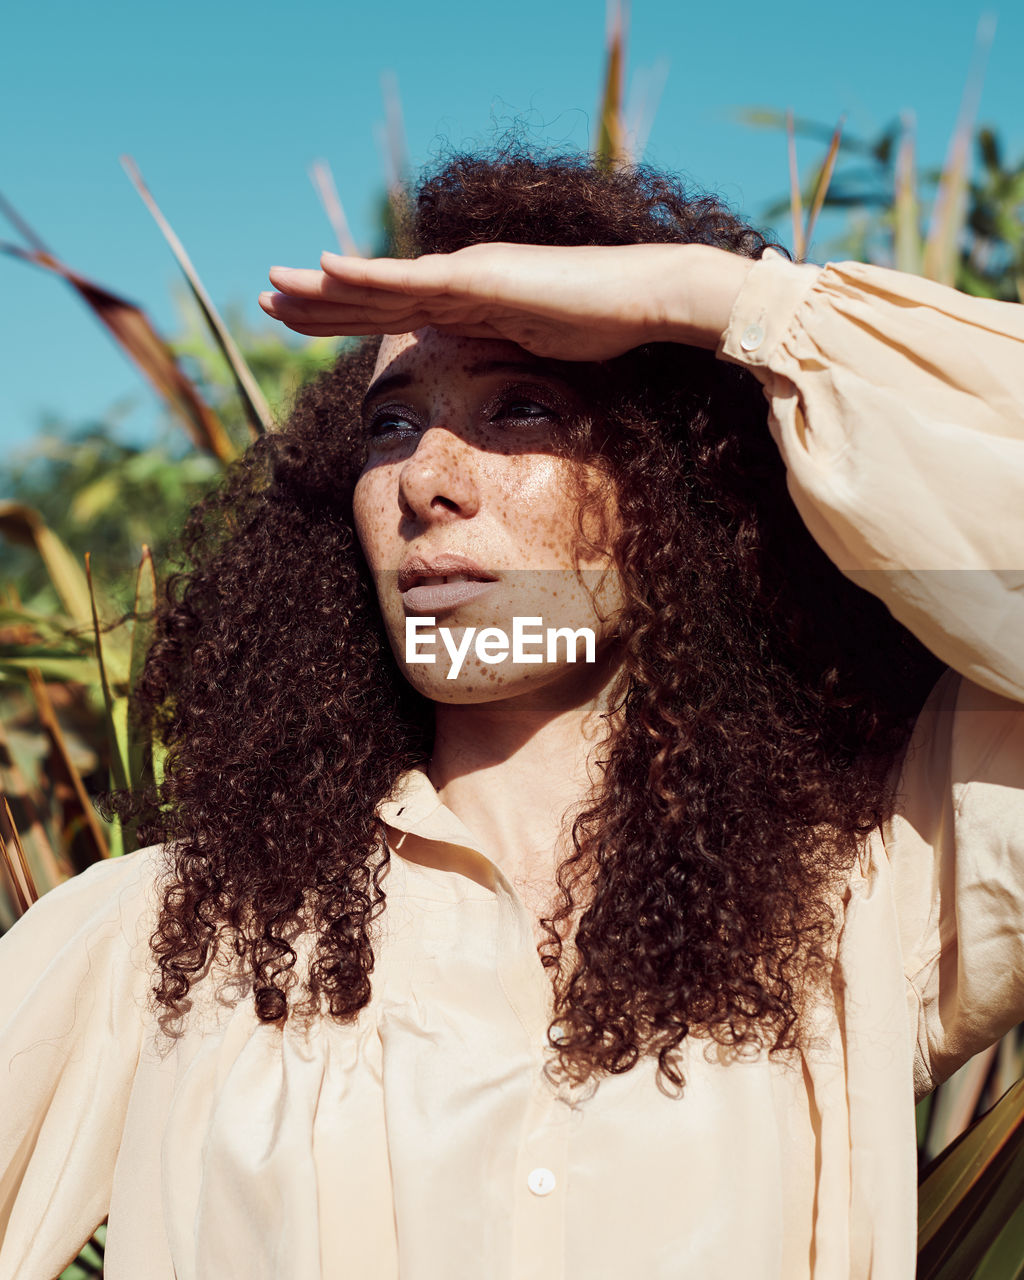 Close-up of woman shielding eyes against plants